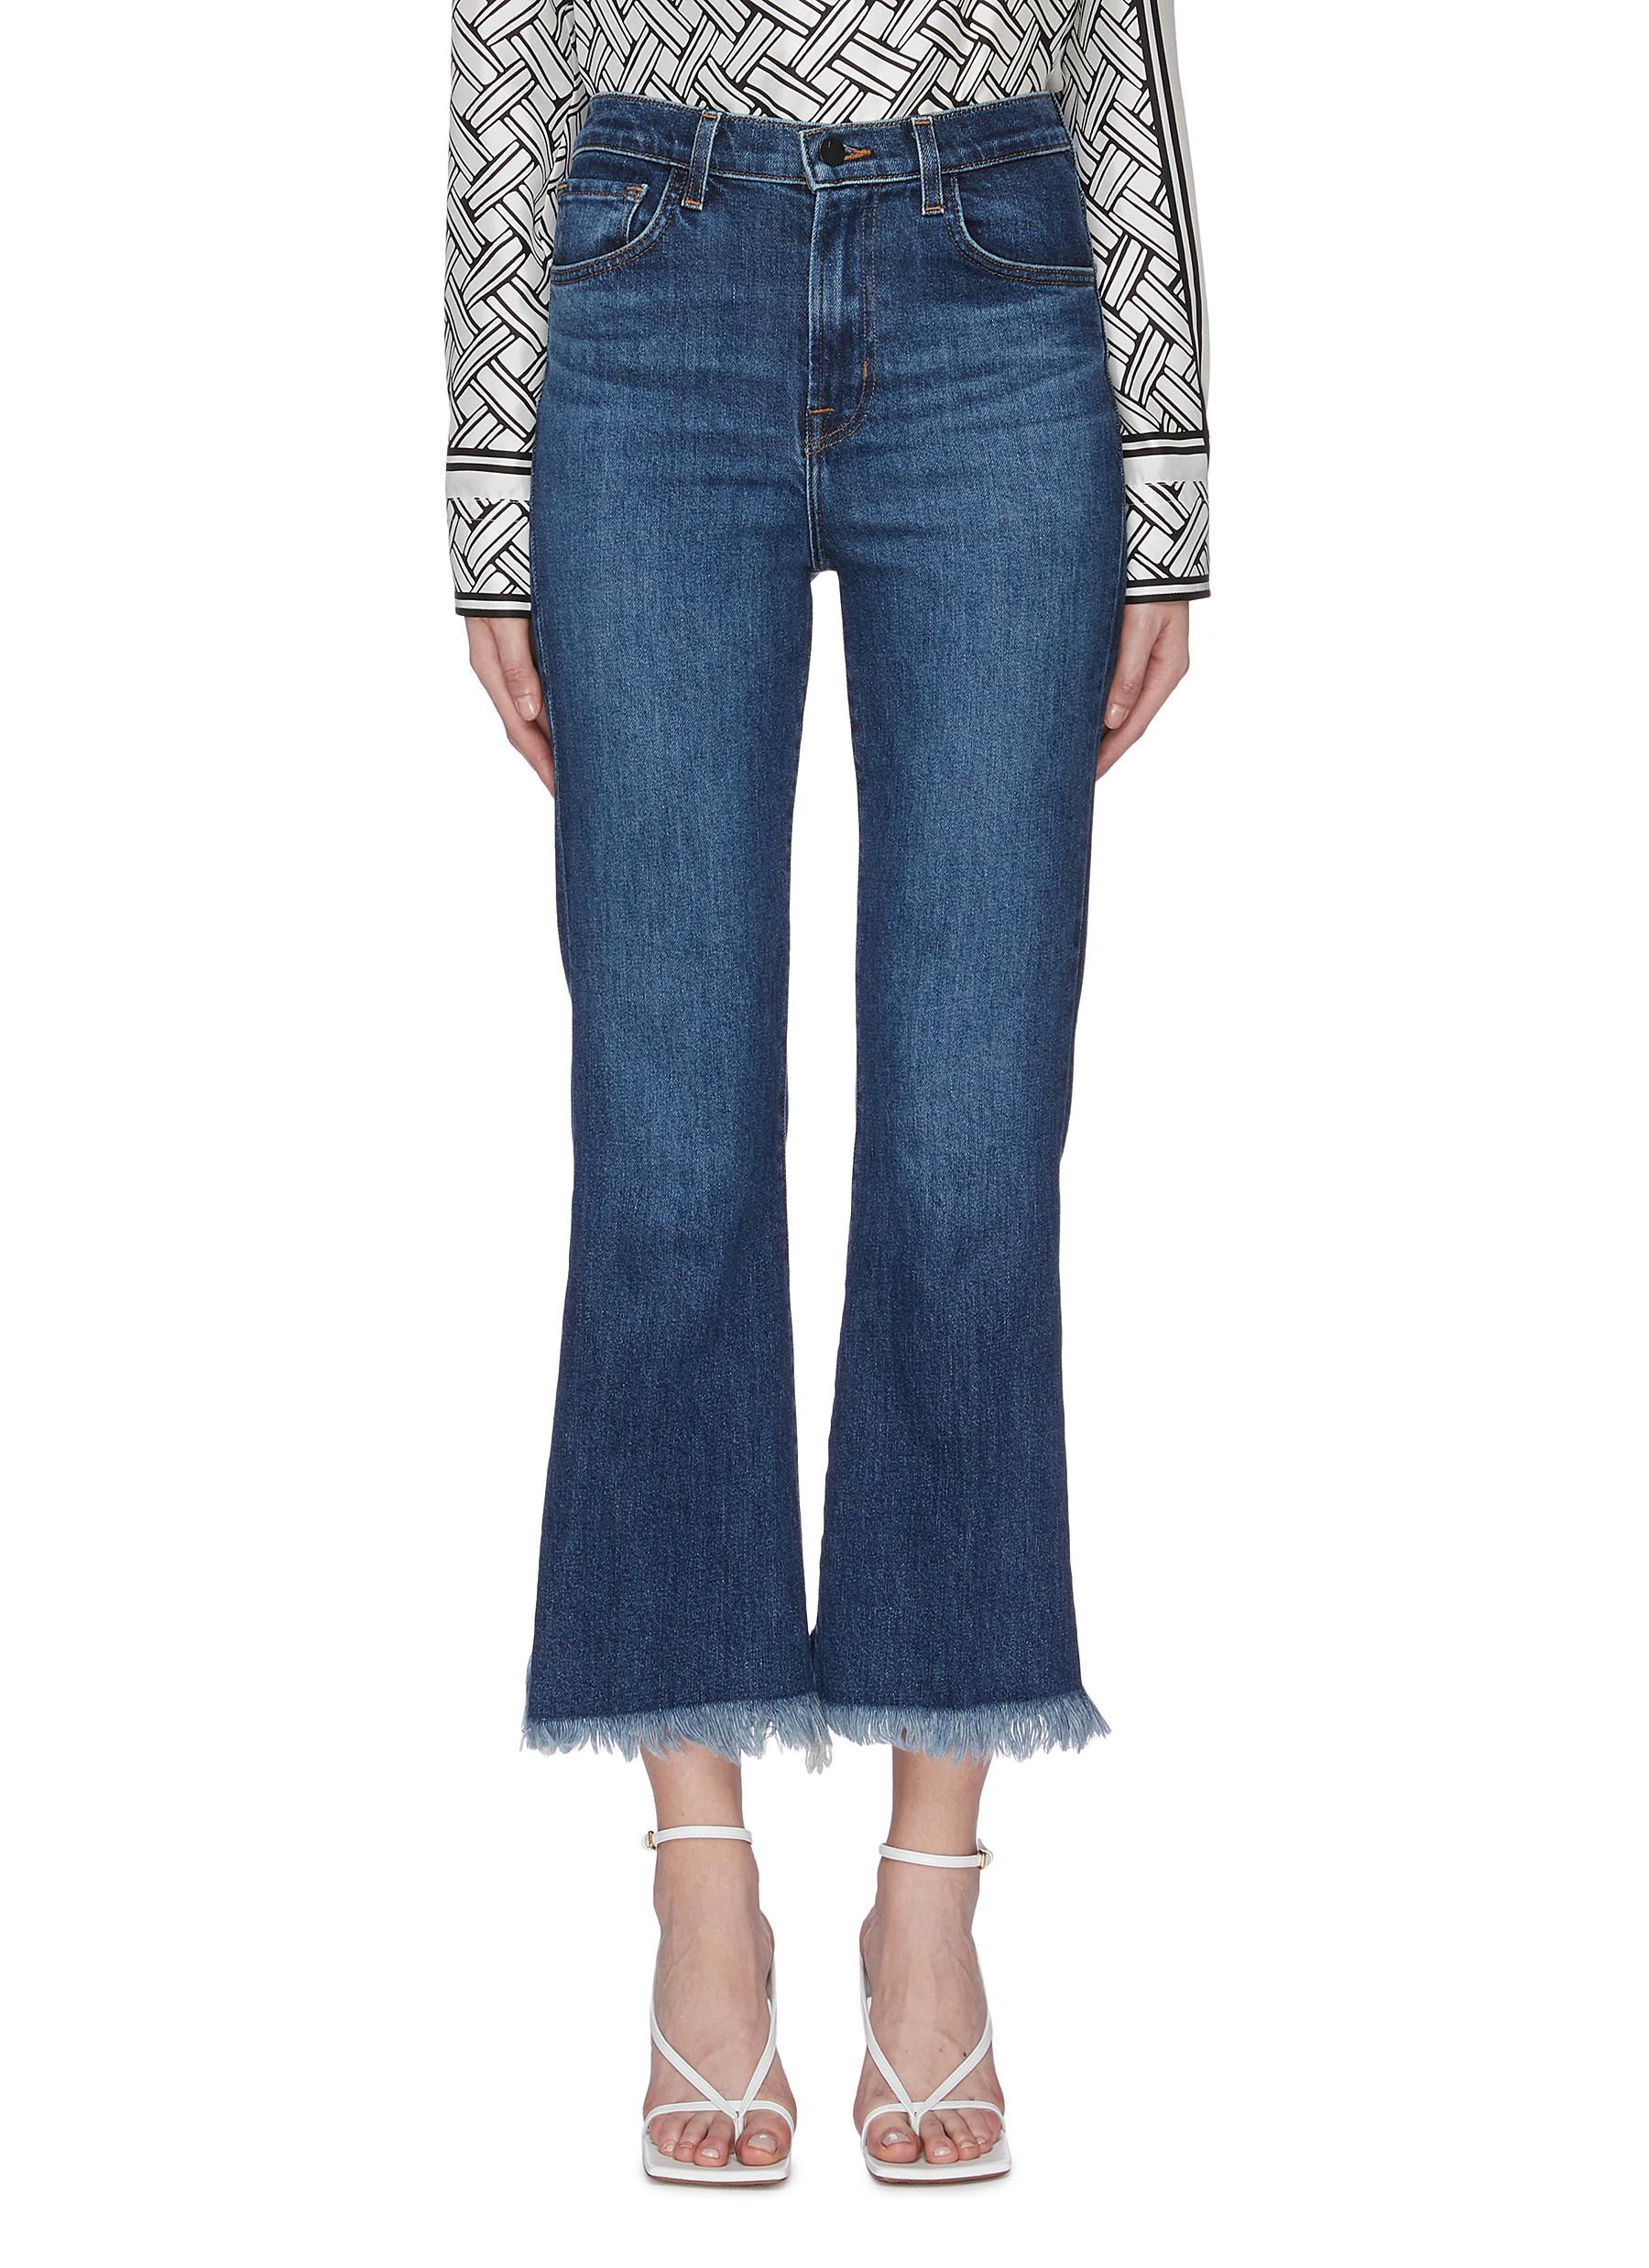 Julia frayed cuff flared jeans by J Brand